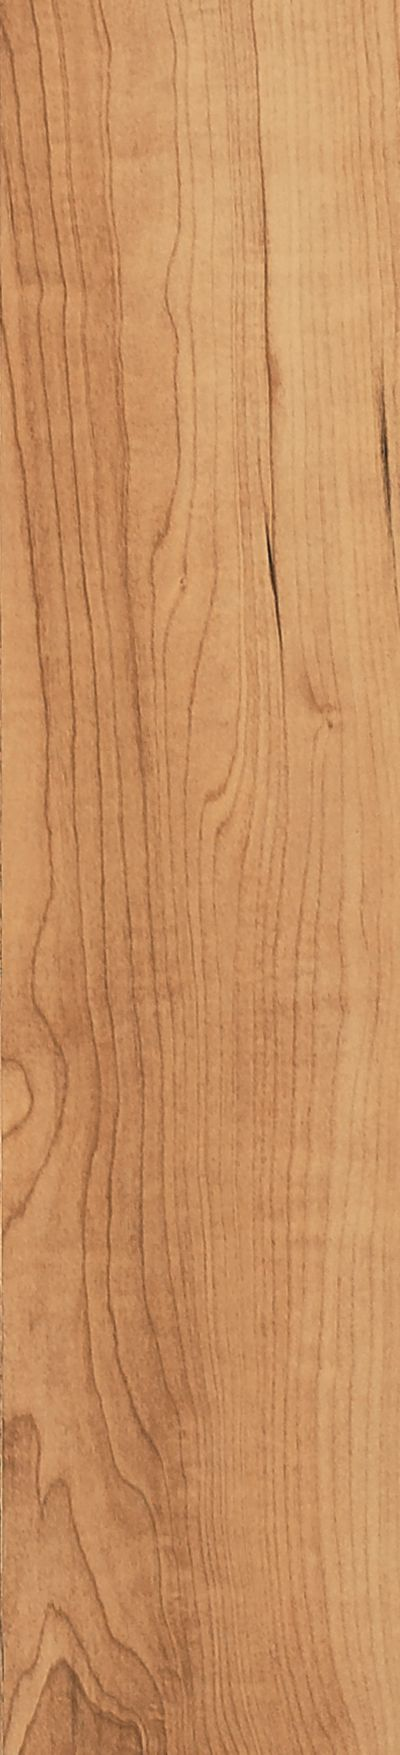 Maple Select Laminado L0202